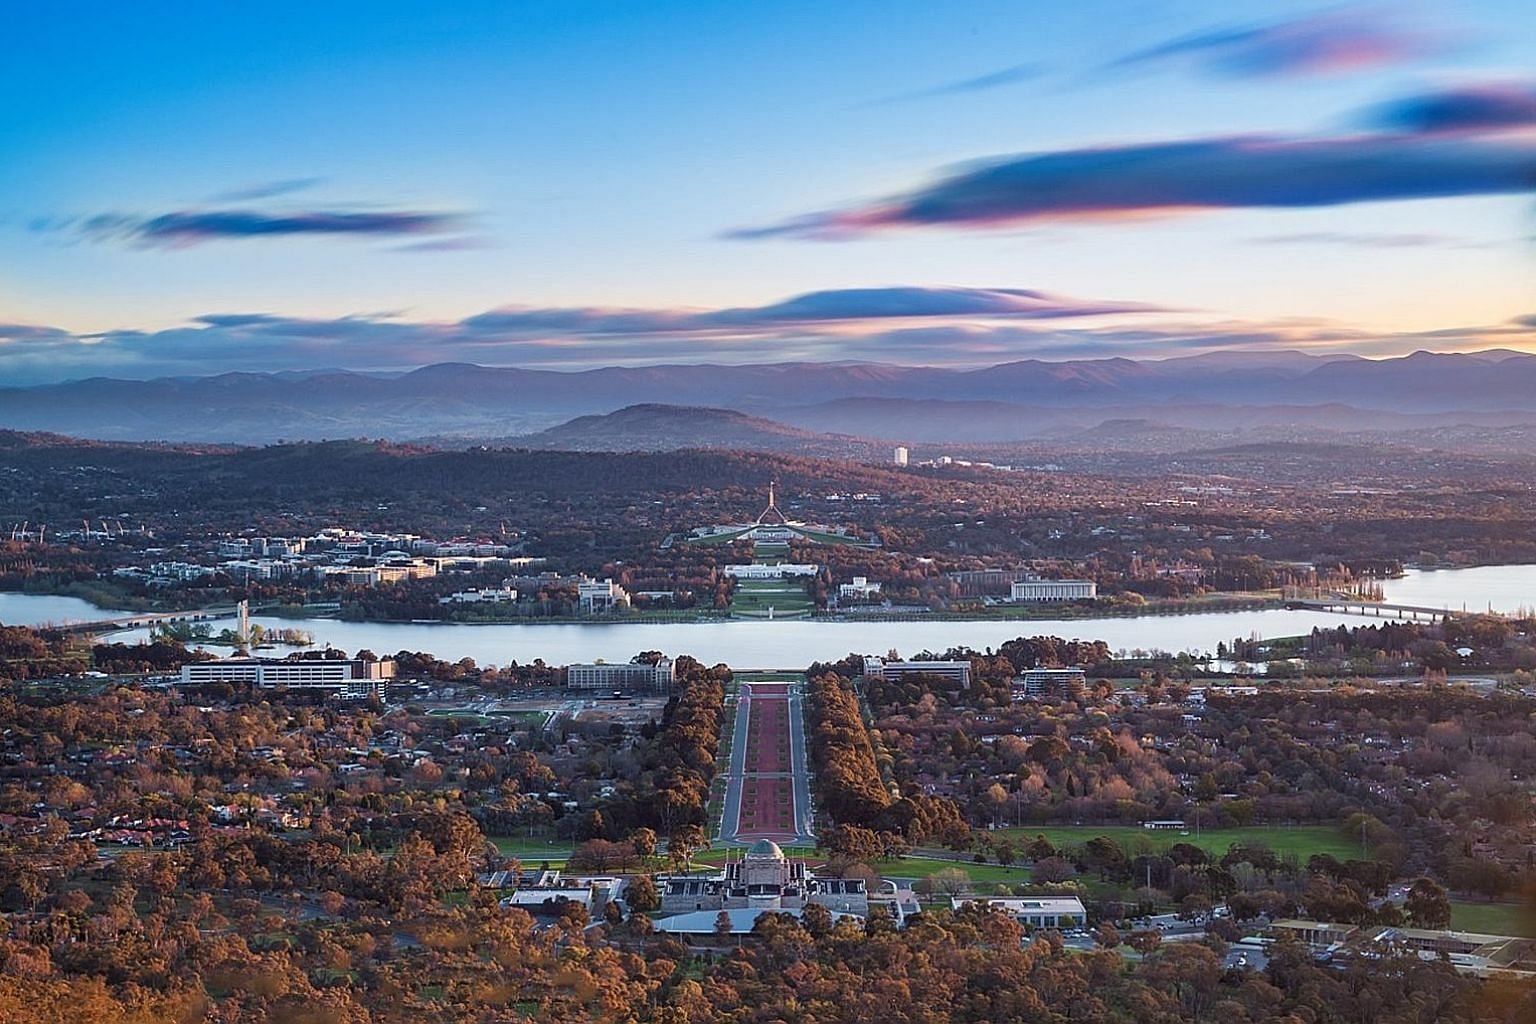 For a good view of Australia's capital Canberra, head up to lookout points on Mount Ainslie or Red Hill.